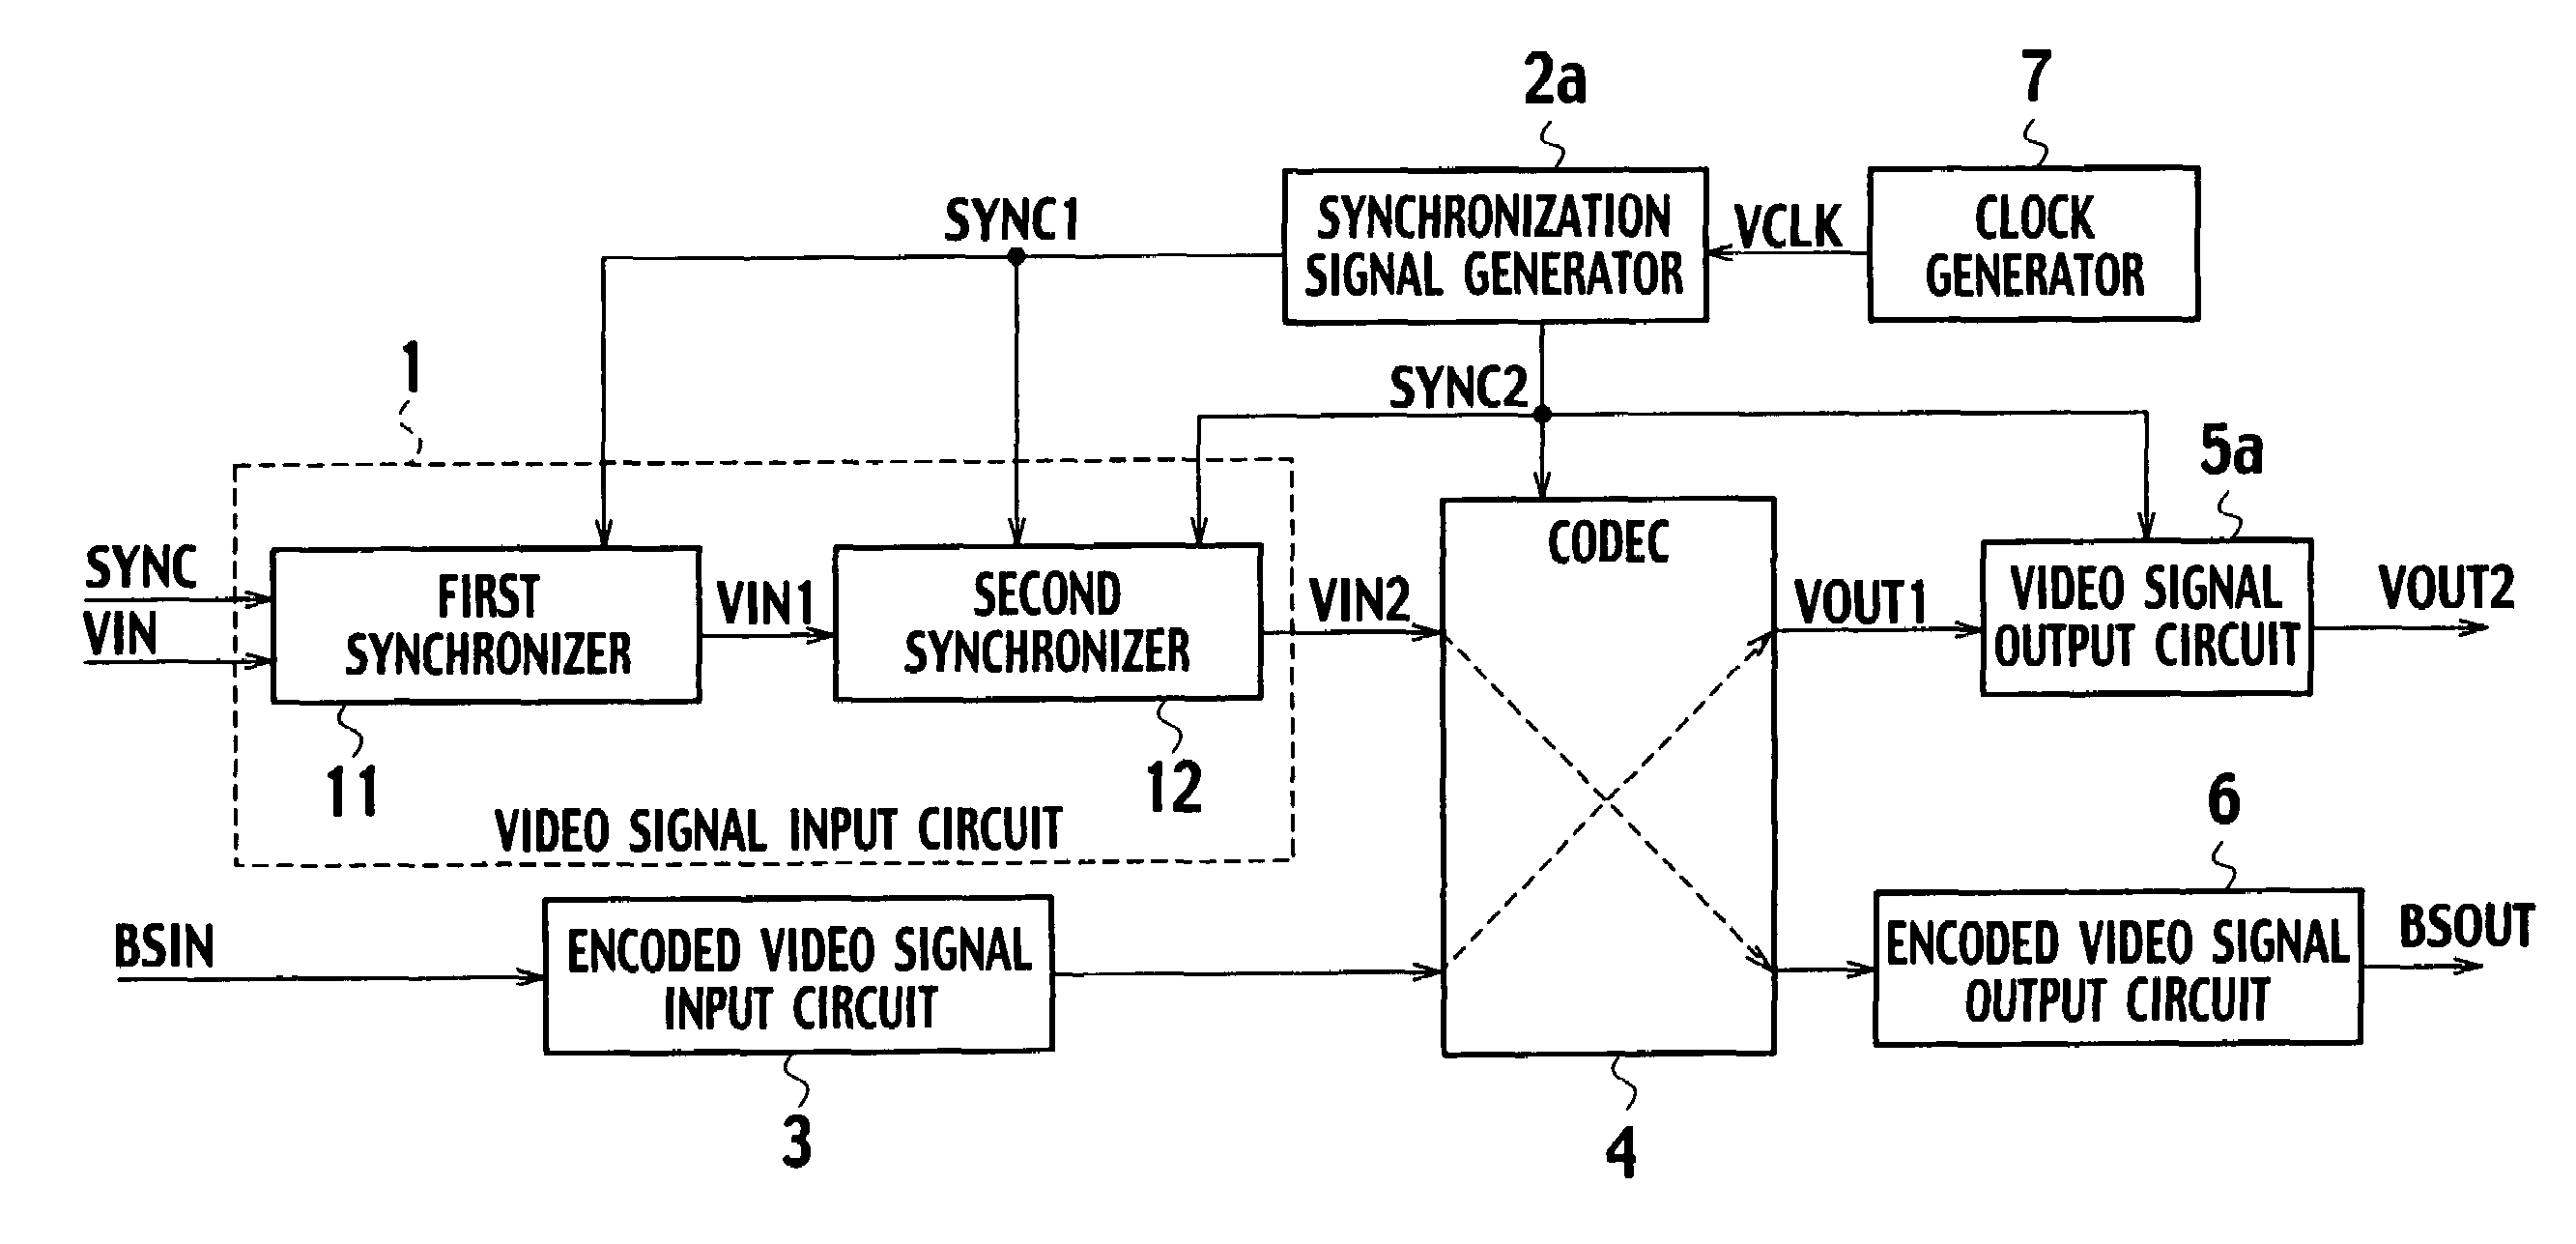 Vdo Synchronizer Wiring Diagram Electrical Diagrams Gauge Patente Us7511760 Video Signal Processor And Method For Processing Street Rod